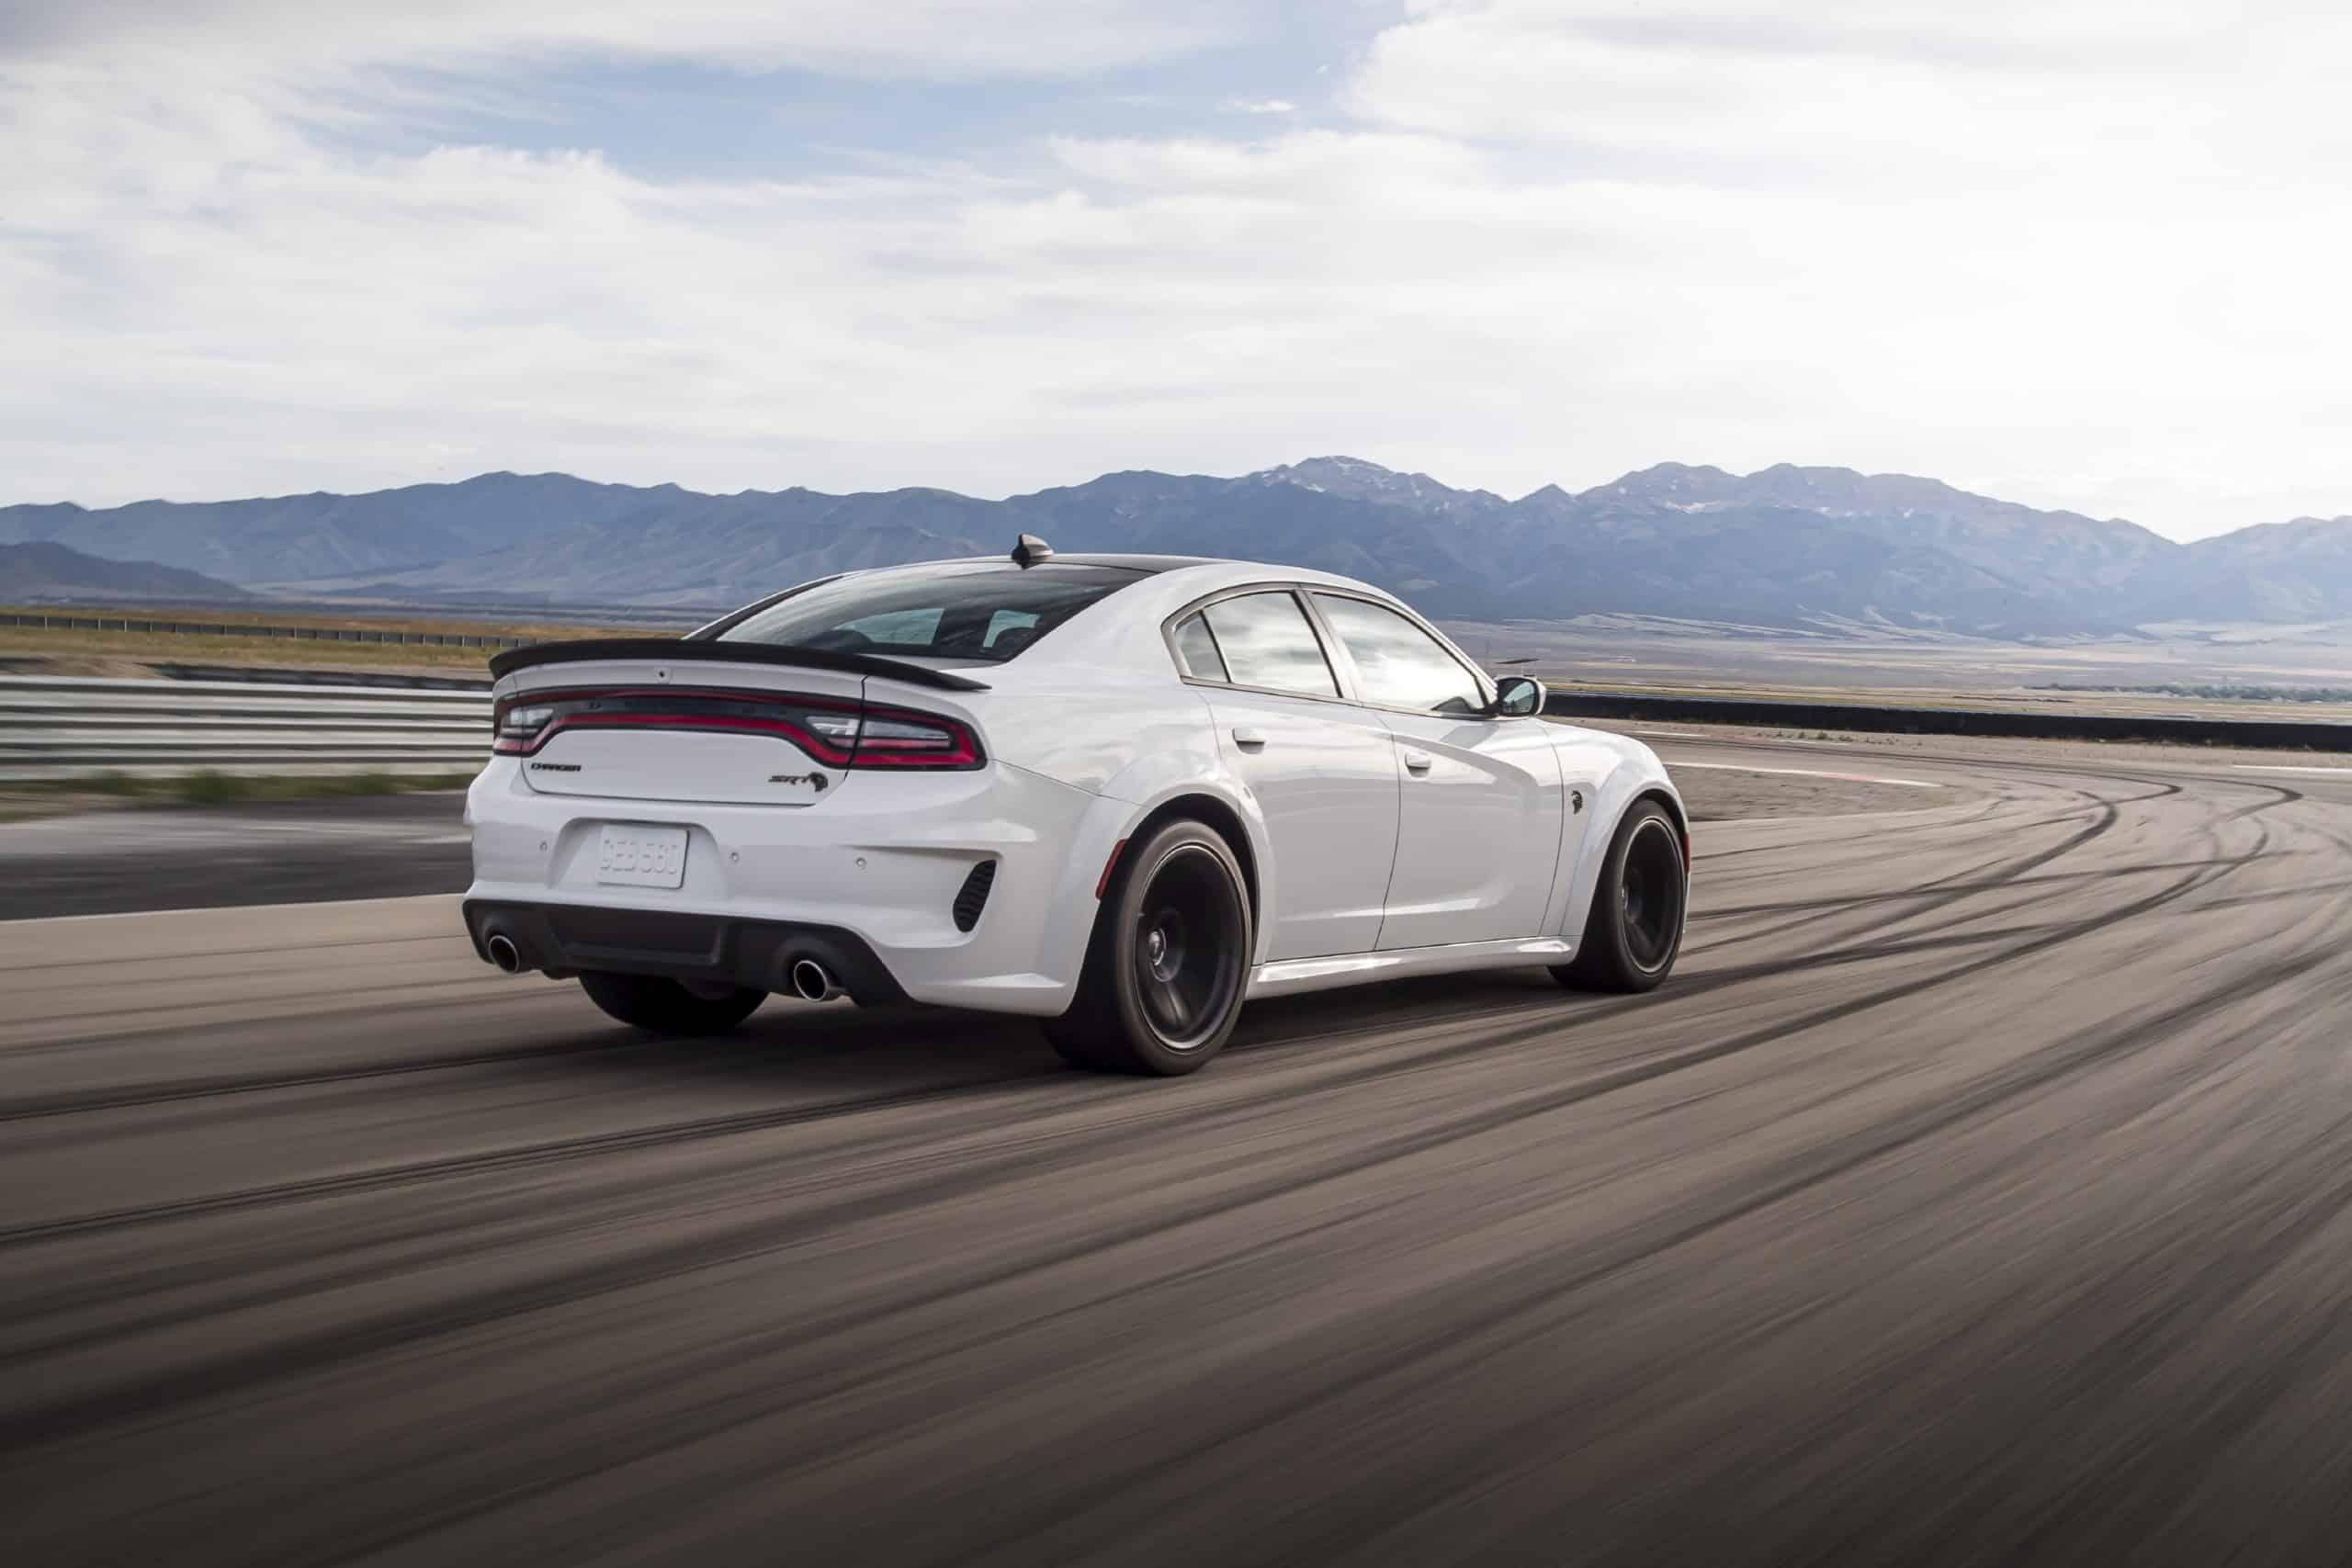 2021 Dodge Charger SRT Hellcat Redeye rear three quarter view in motion